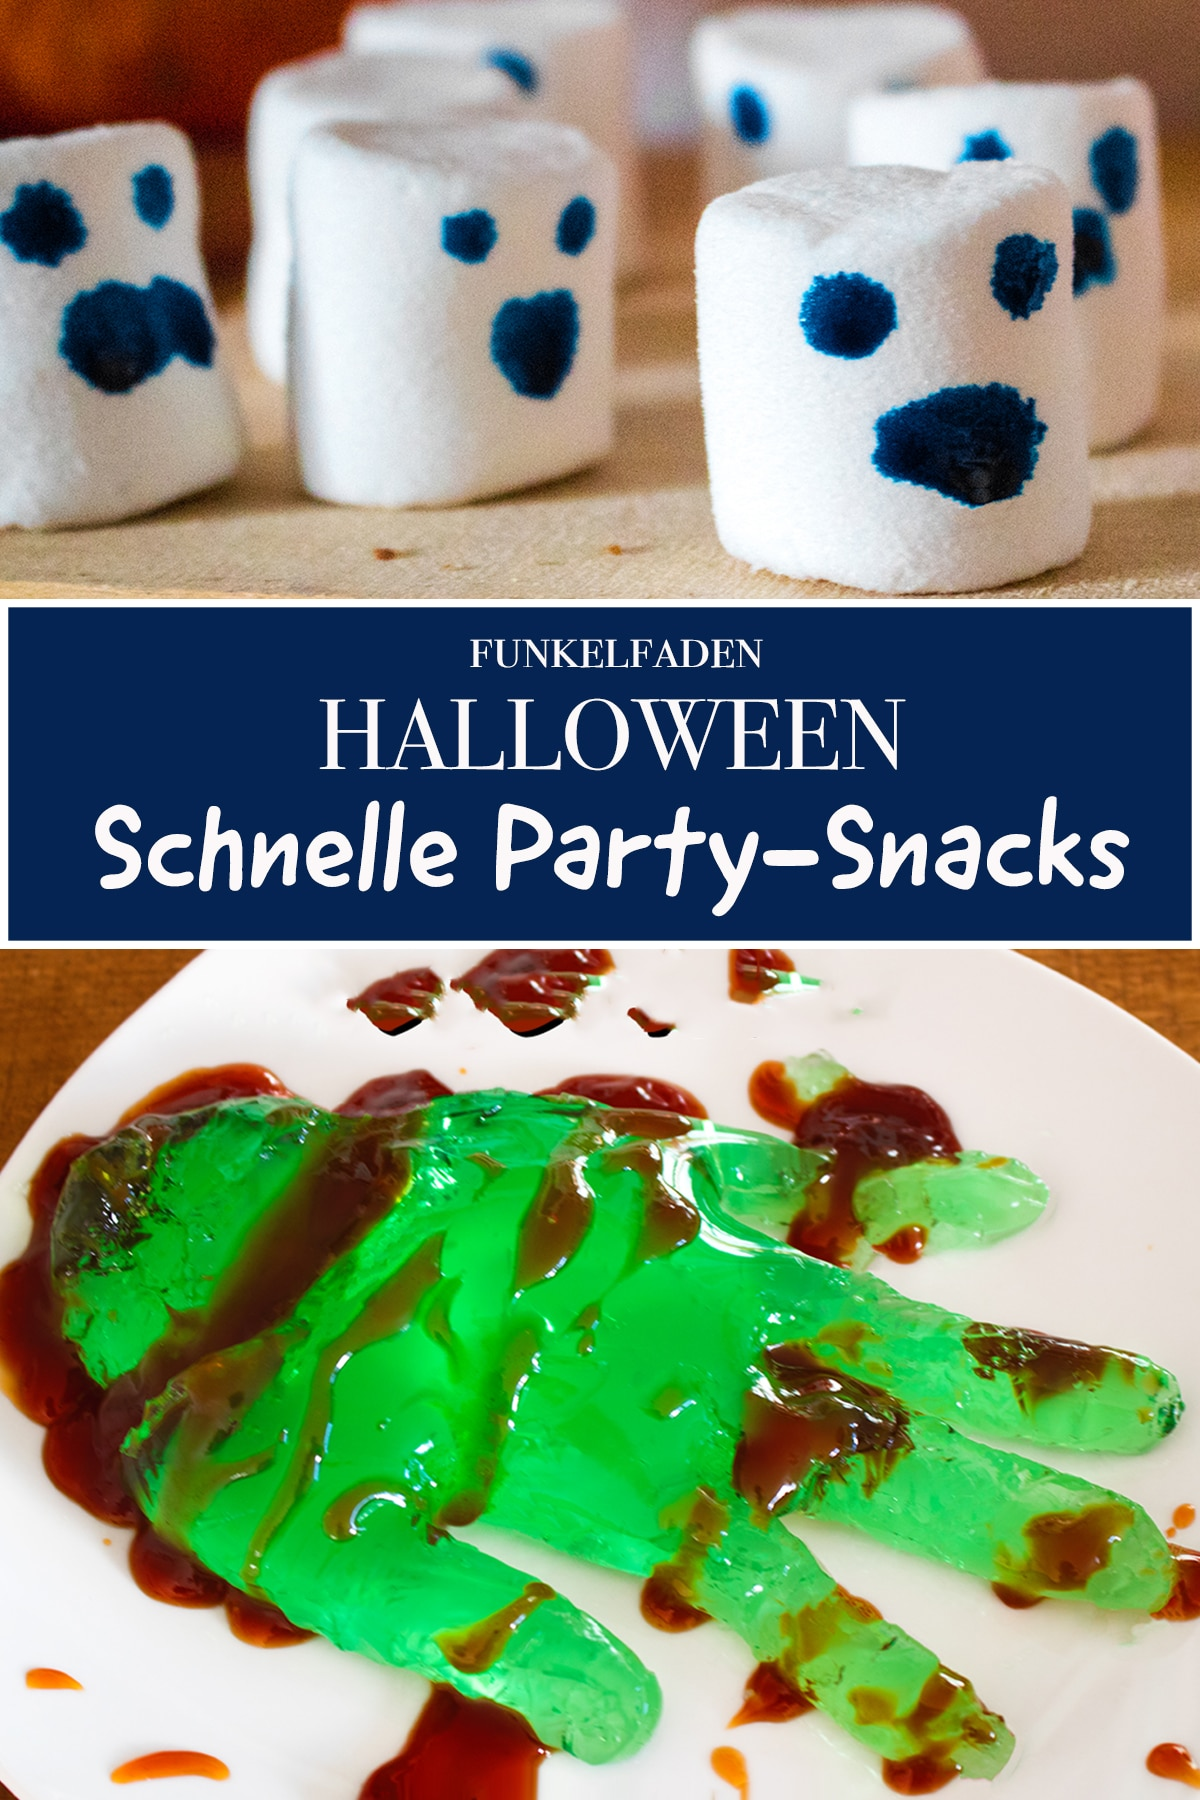 Halloween Party - Schnelle Party Snacks